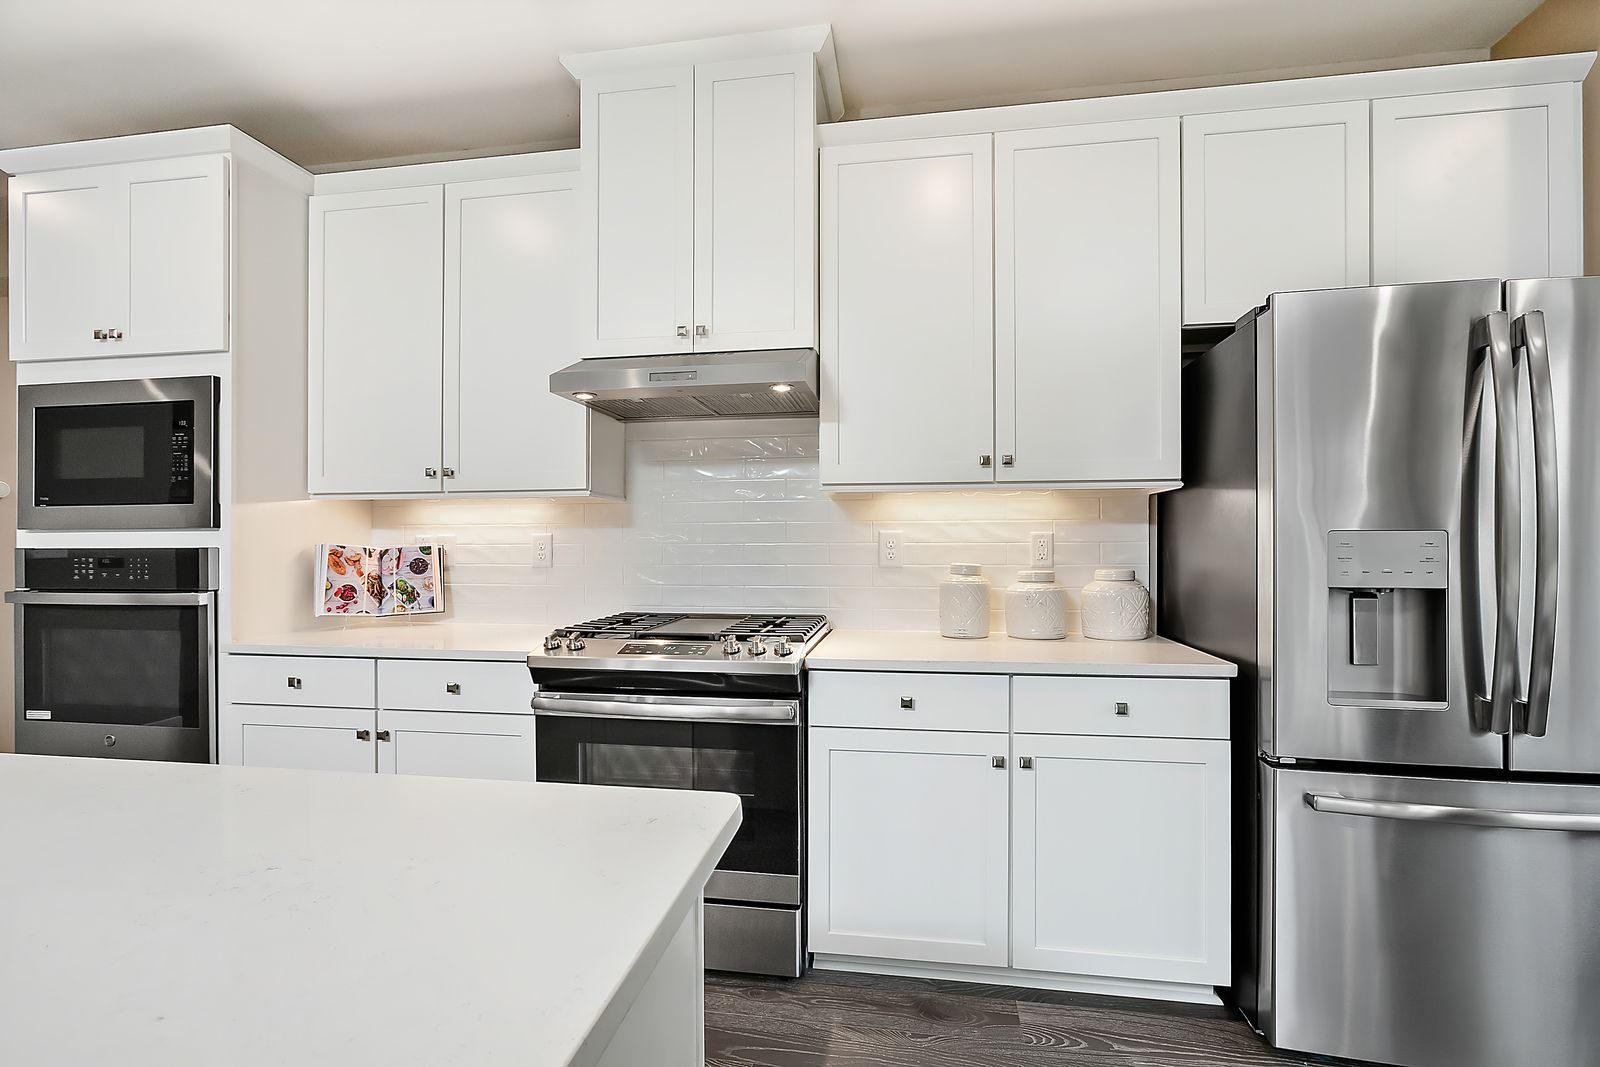 Kitchen featured in the Bramante 2 Story Slab - Basement Available By Ryan Homes in Chicago, IL